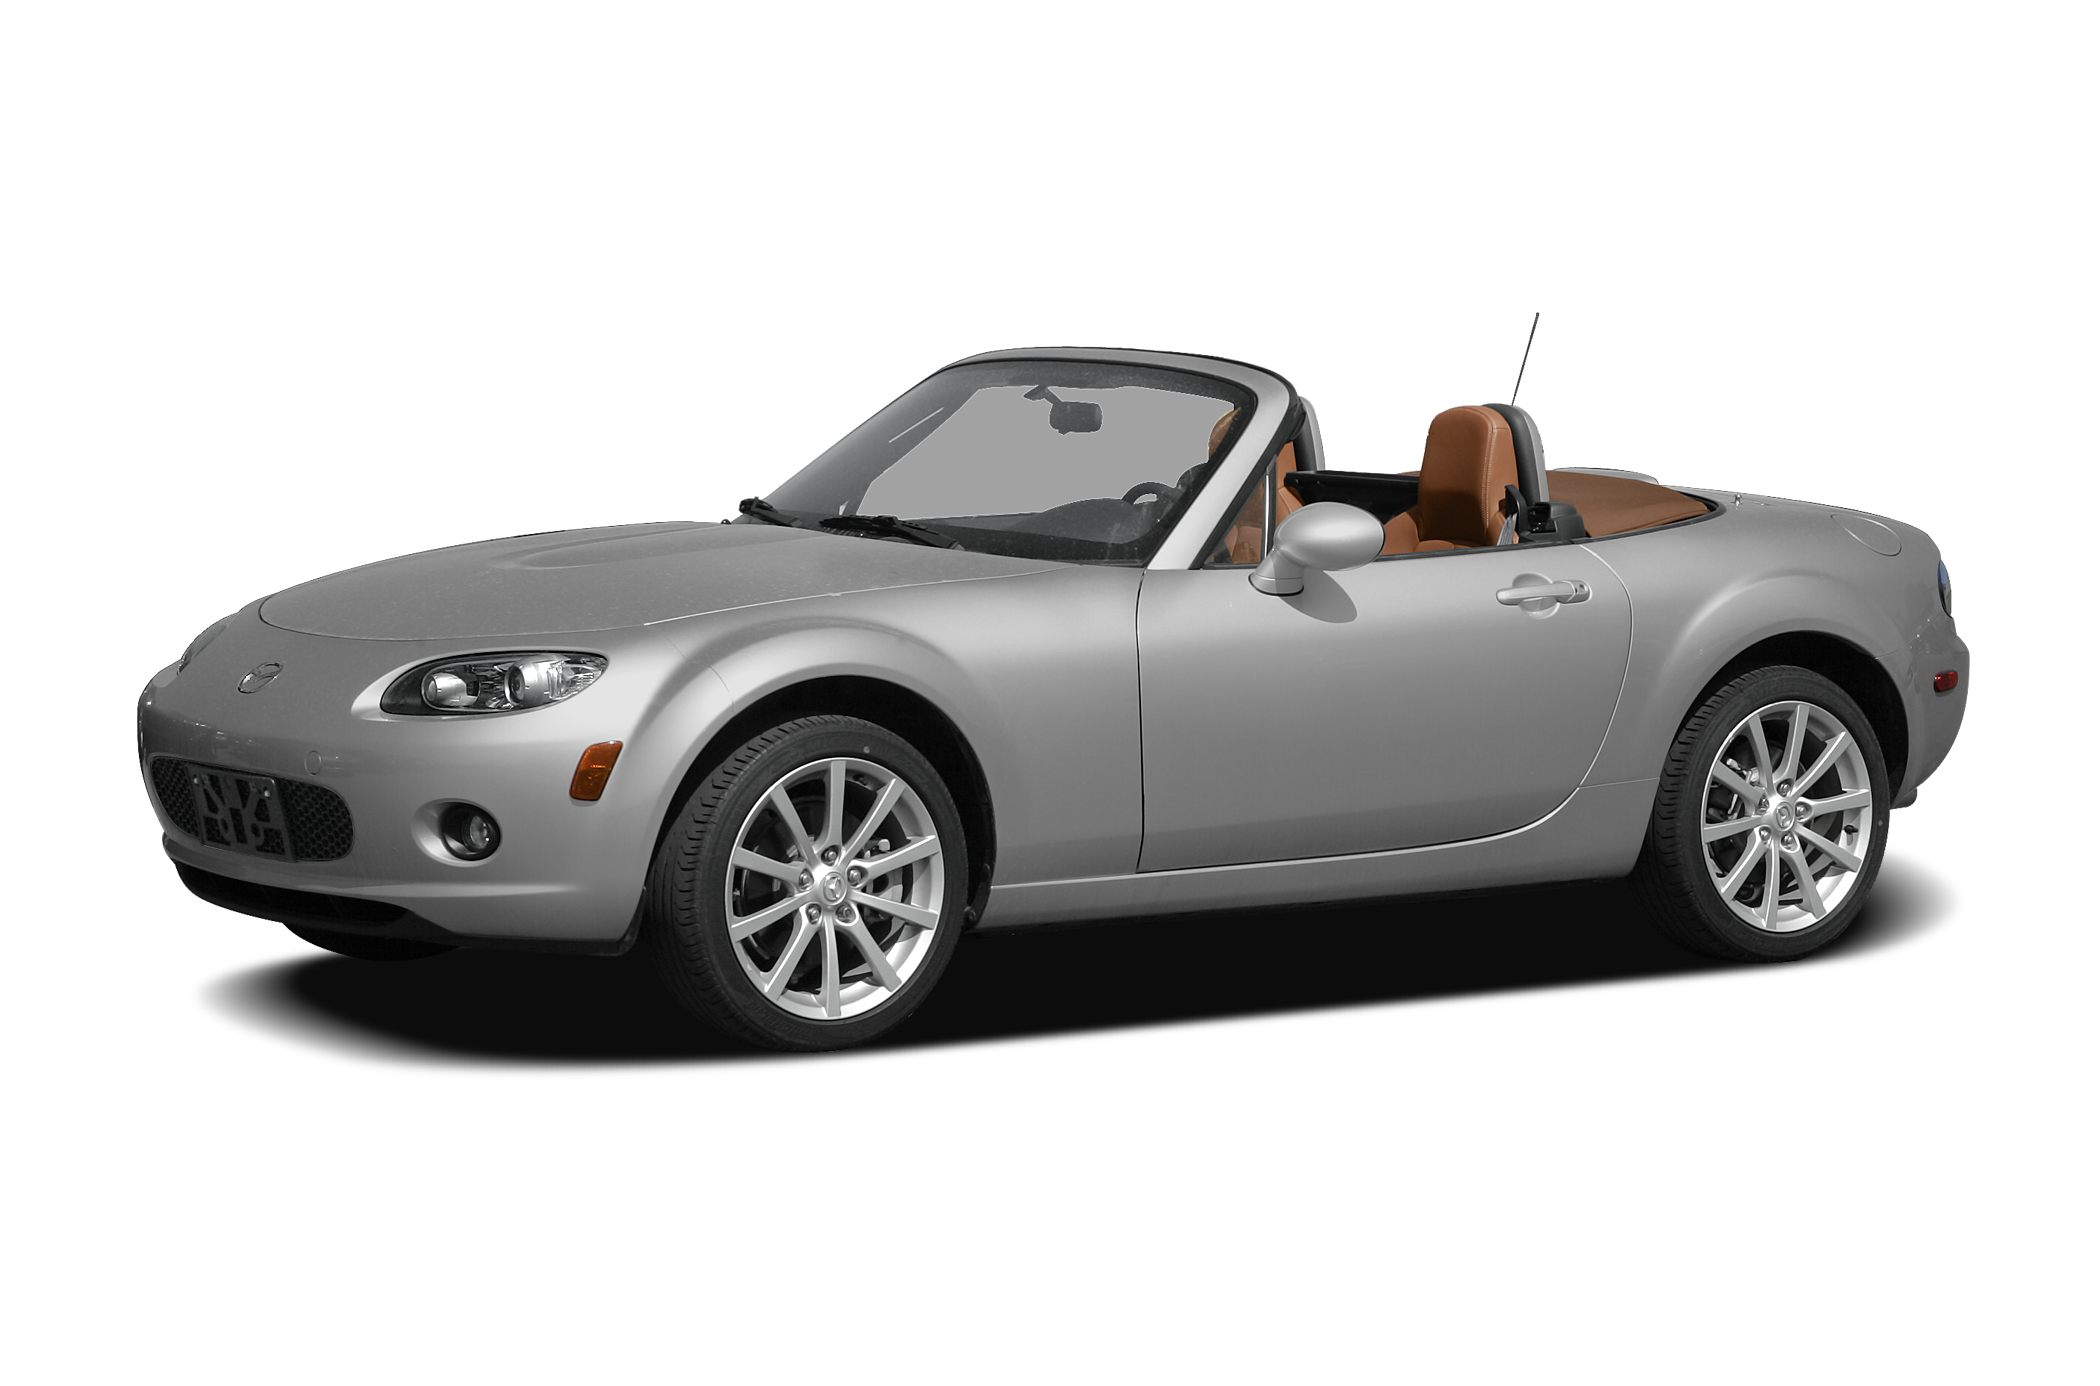 2008 Mazda Miata Grand Touring Introducing the 2008 Mazda MX-5 This is an excellent vehicle at an